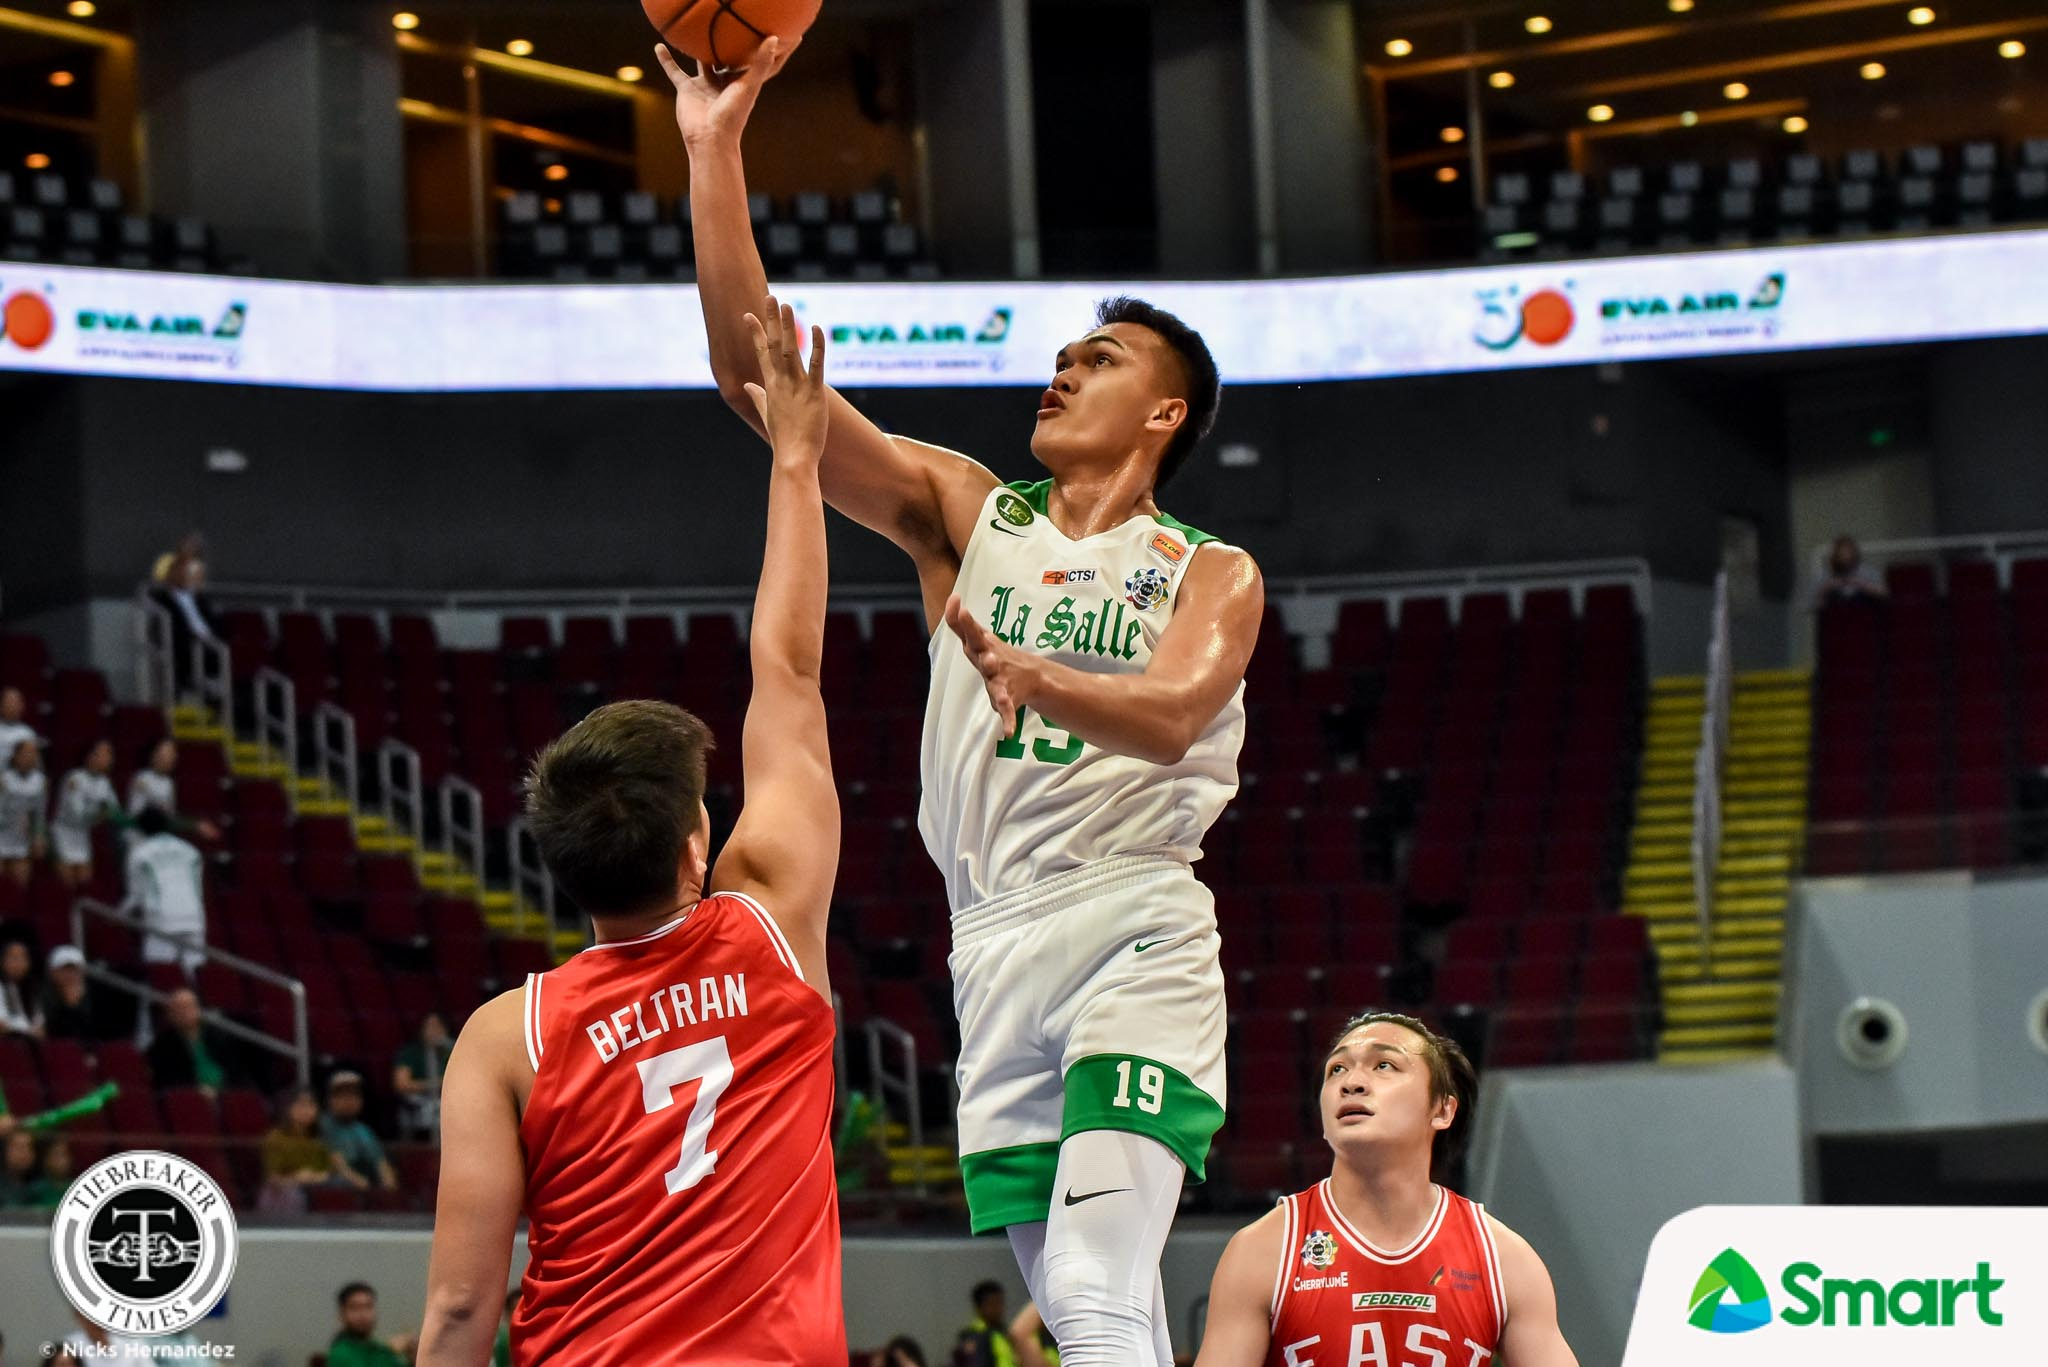 Tiebreaker Times Not even fever could stop Baltazar from avenging loss to UE Basketball DLSU News UAAP  UAAP Season 82 Men's Basketball UAAP Season 82 Justine Baltazar Gian Nazario DLSU Men's Basketball